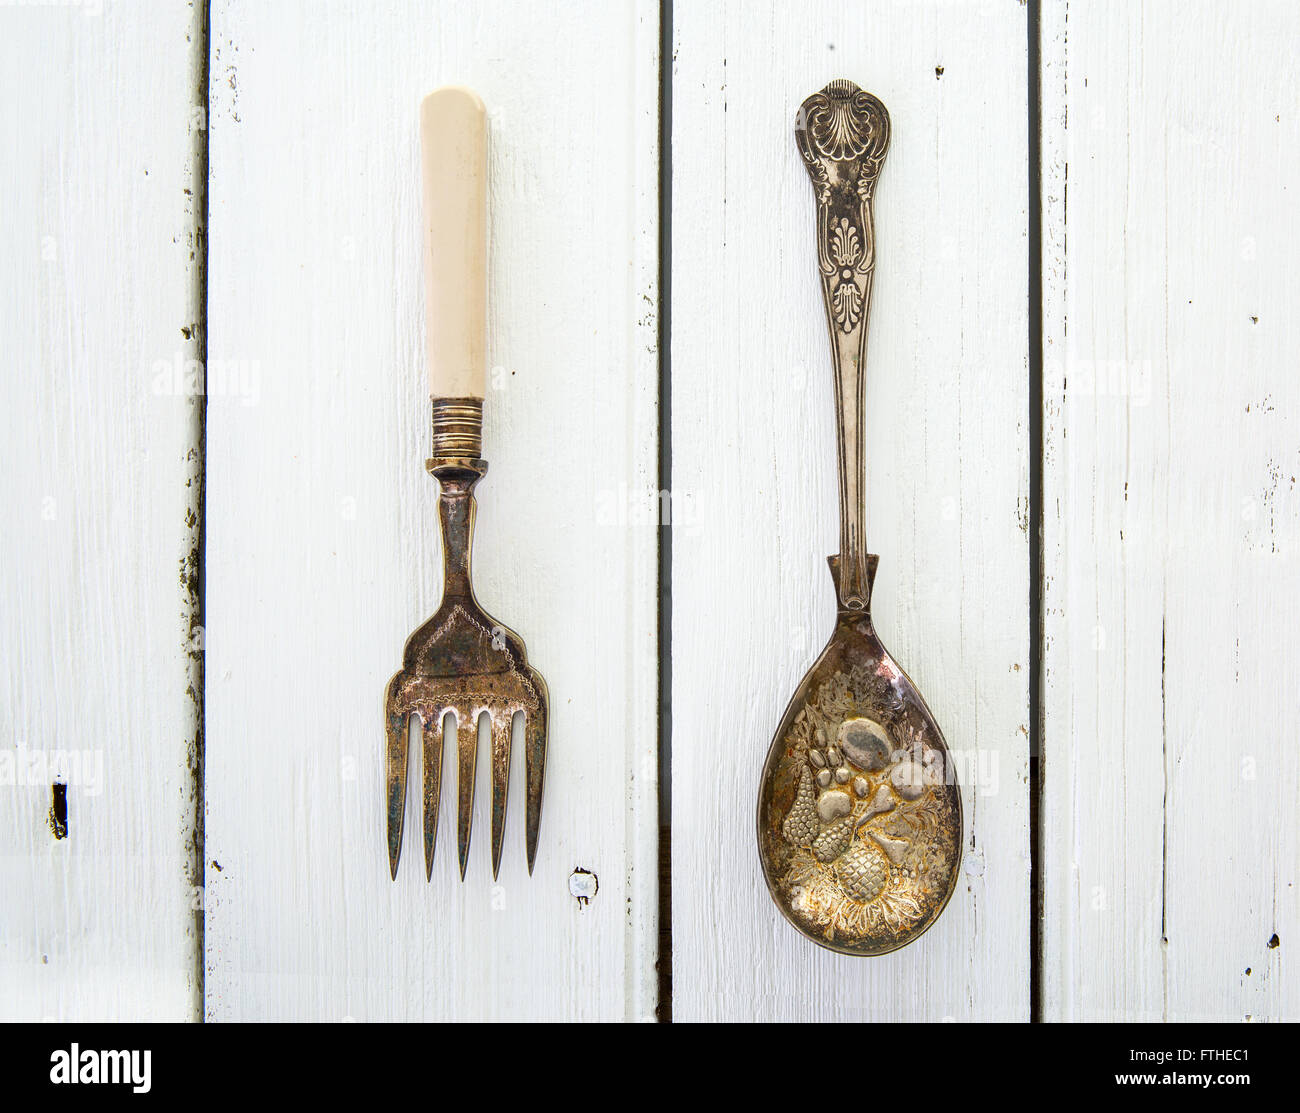 Vintage Fork and Spoon on a rustic white wooden table - Stock Image